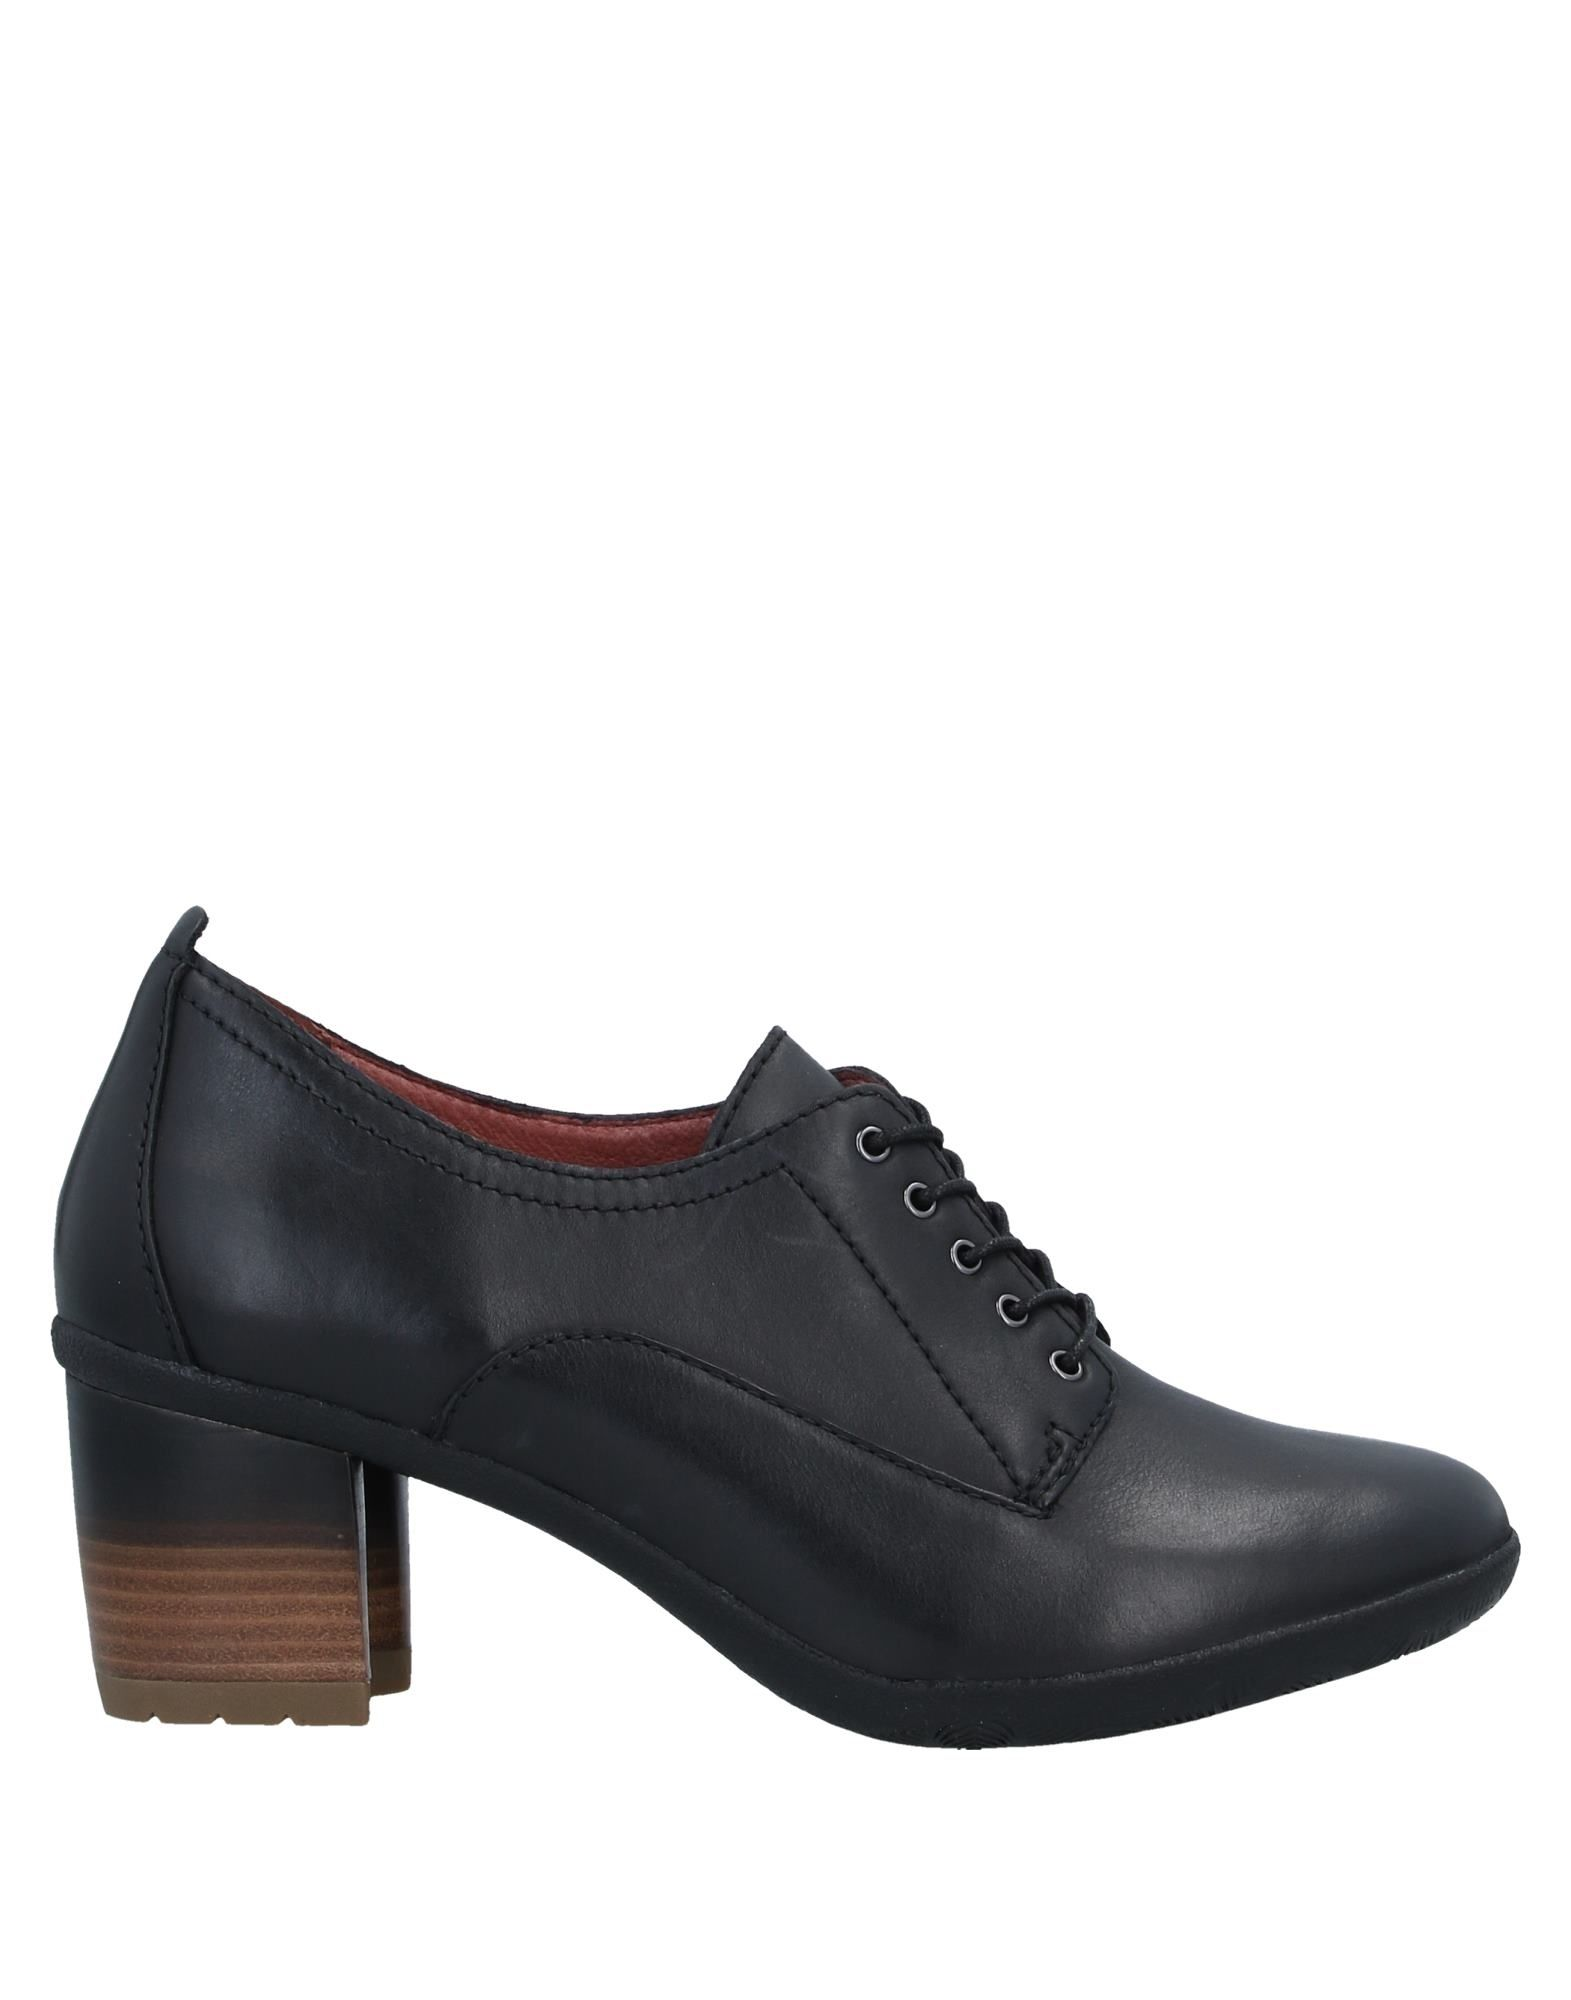 DANSKO Lace-up shoes. leather, no appliqués, solid color, round toeline, square heel, leather lining, rubber sole, contains non-textile parts of animal origin. Soft Leather